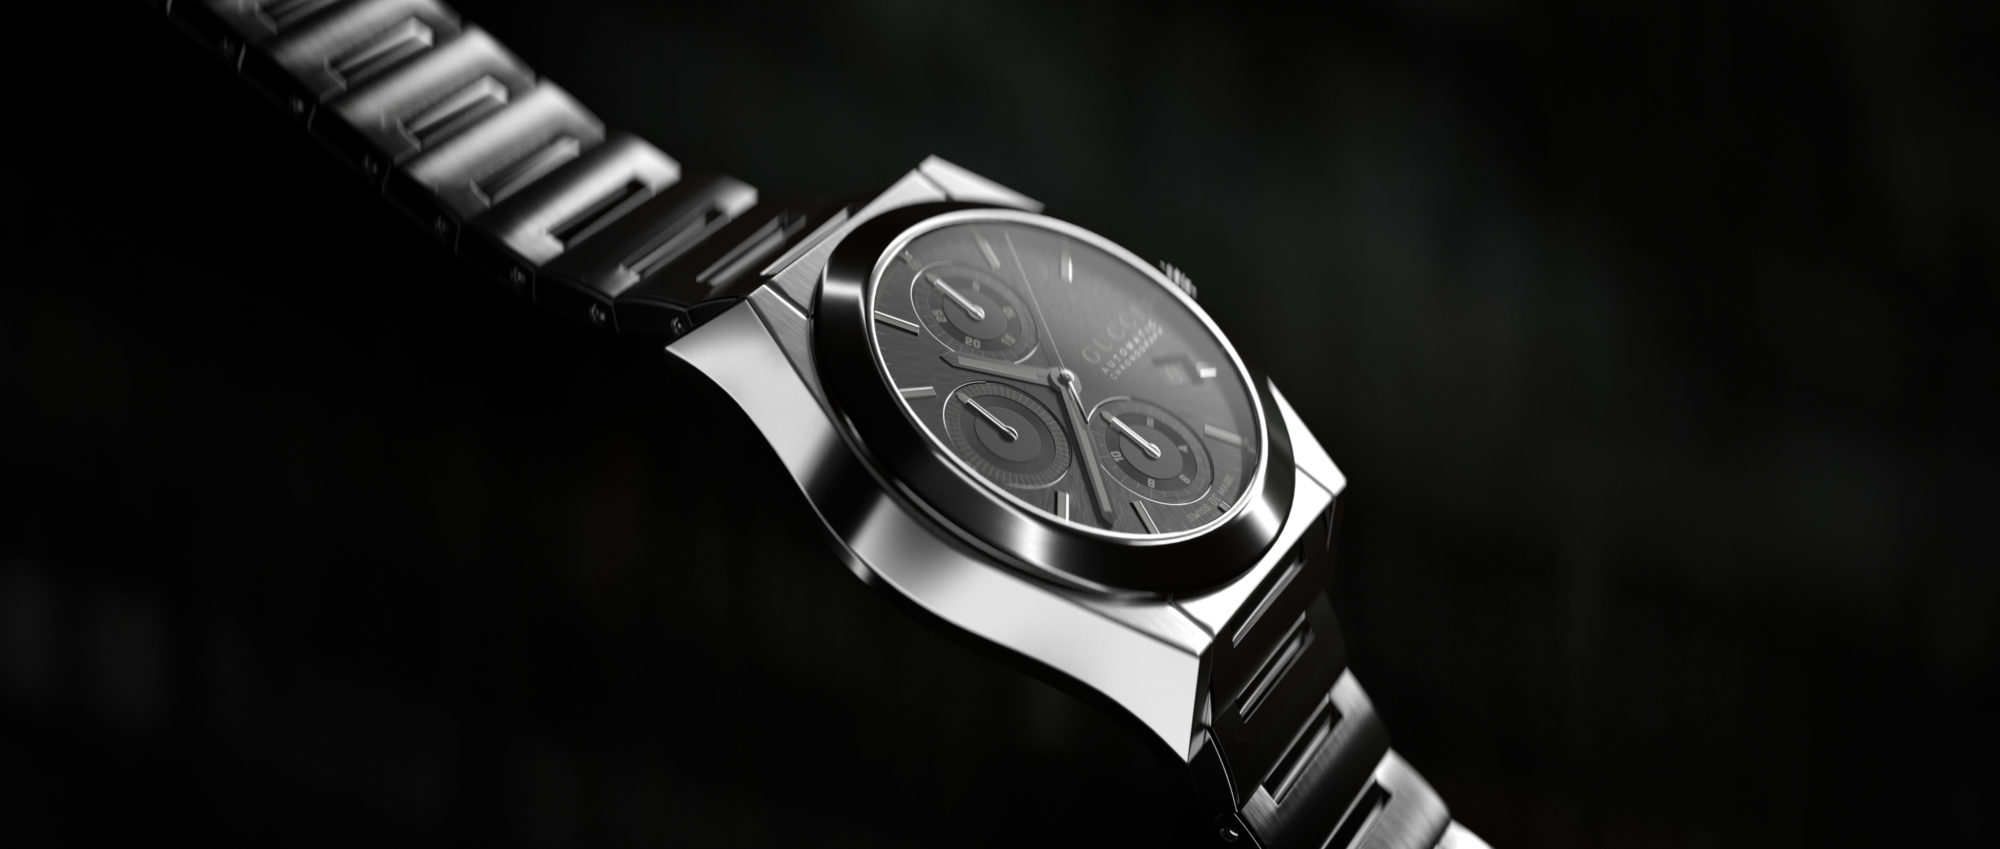 Gucci Watch Gunmetal Against Black